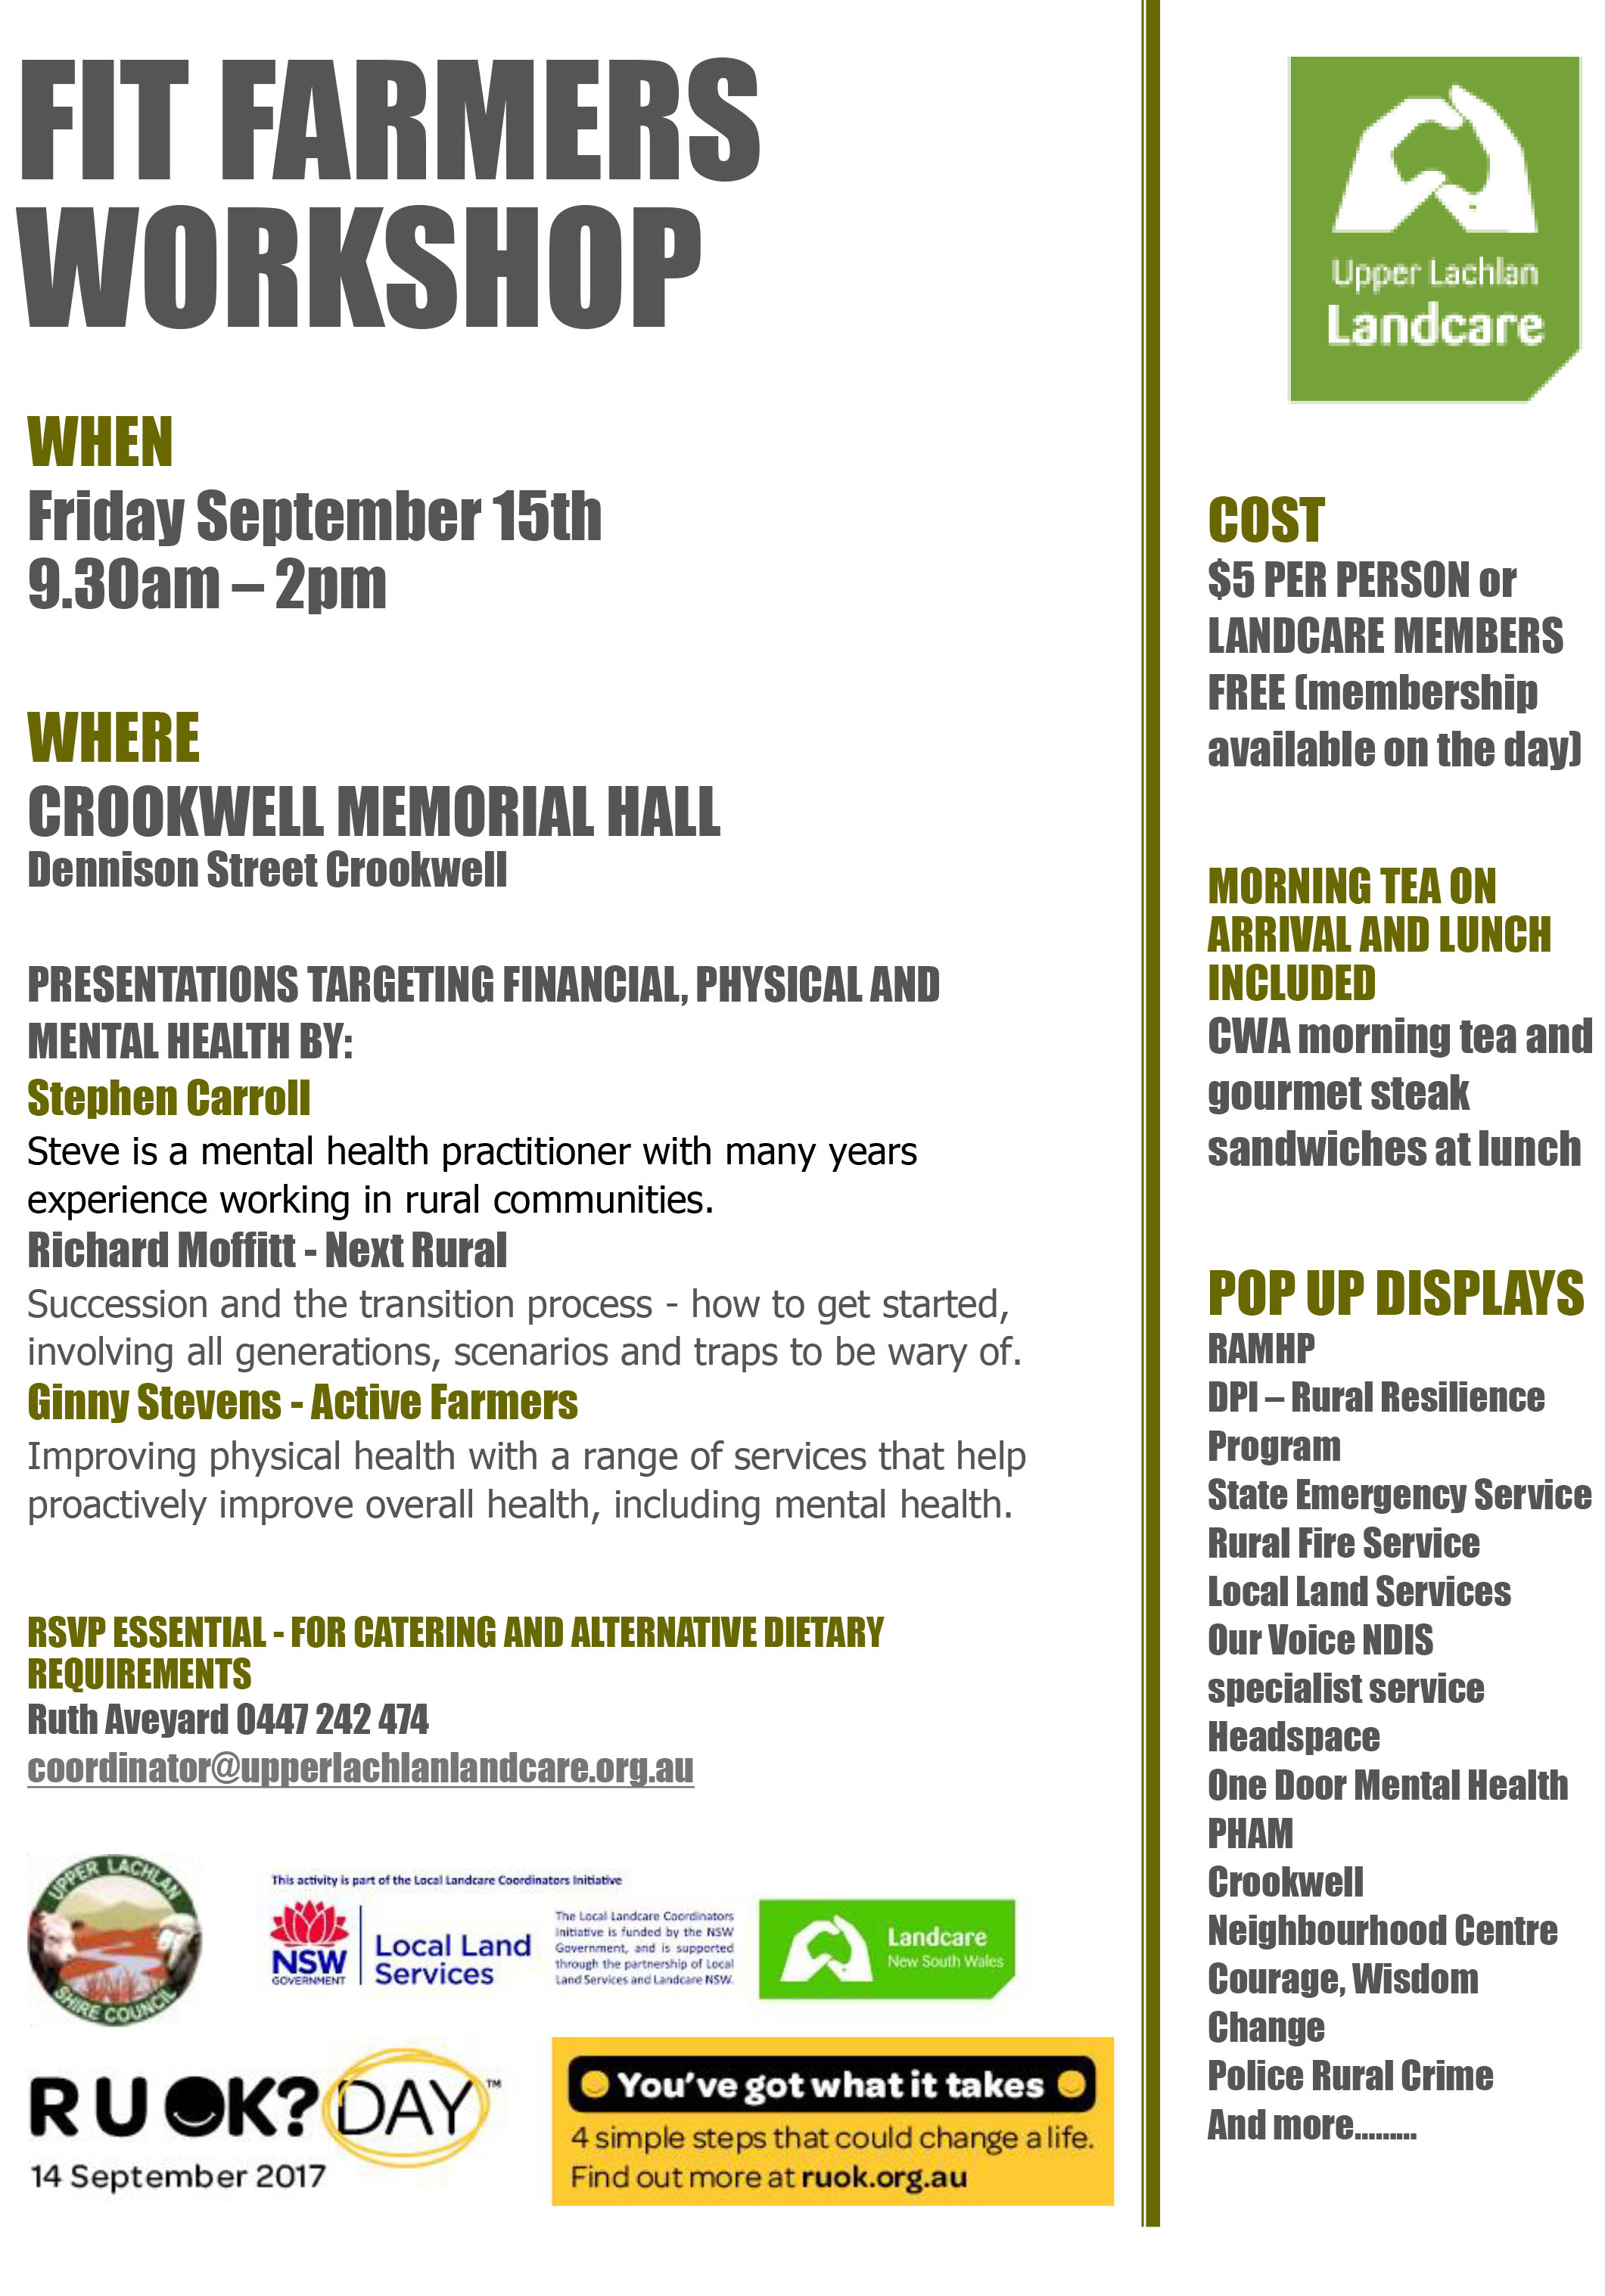 A Fit Farmers Workshop will be held at Crookwell Memorial Hall on Friday, 15 September 2017.